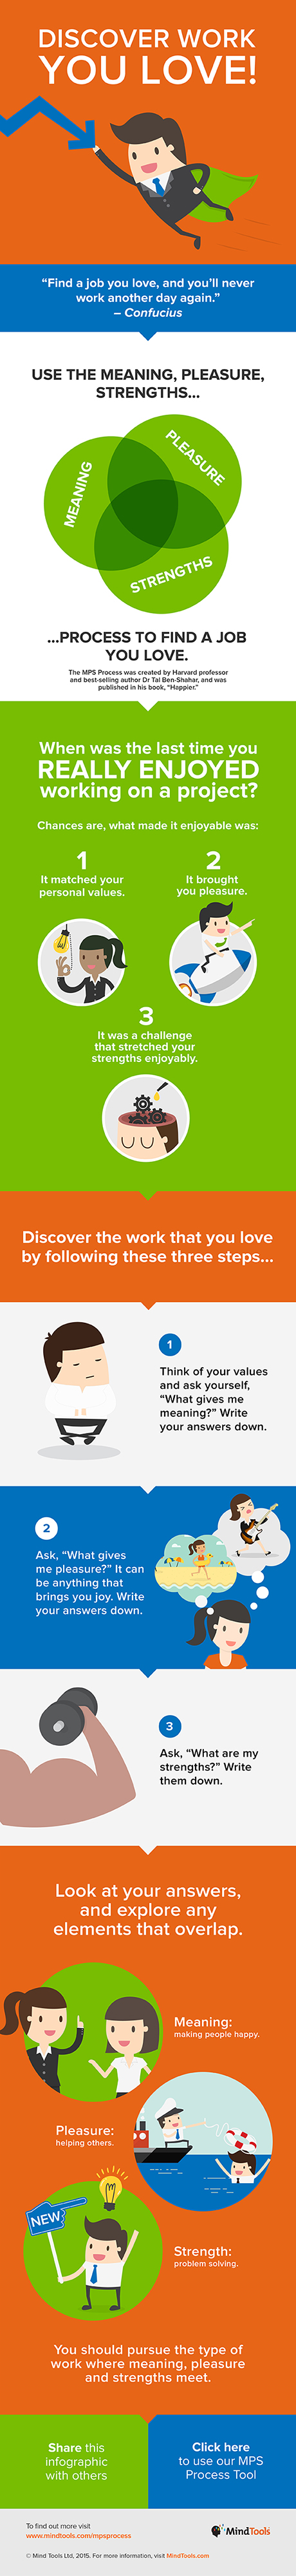 Discover Work You Love! Infographic